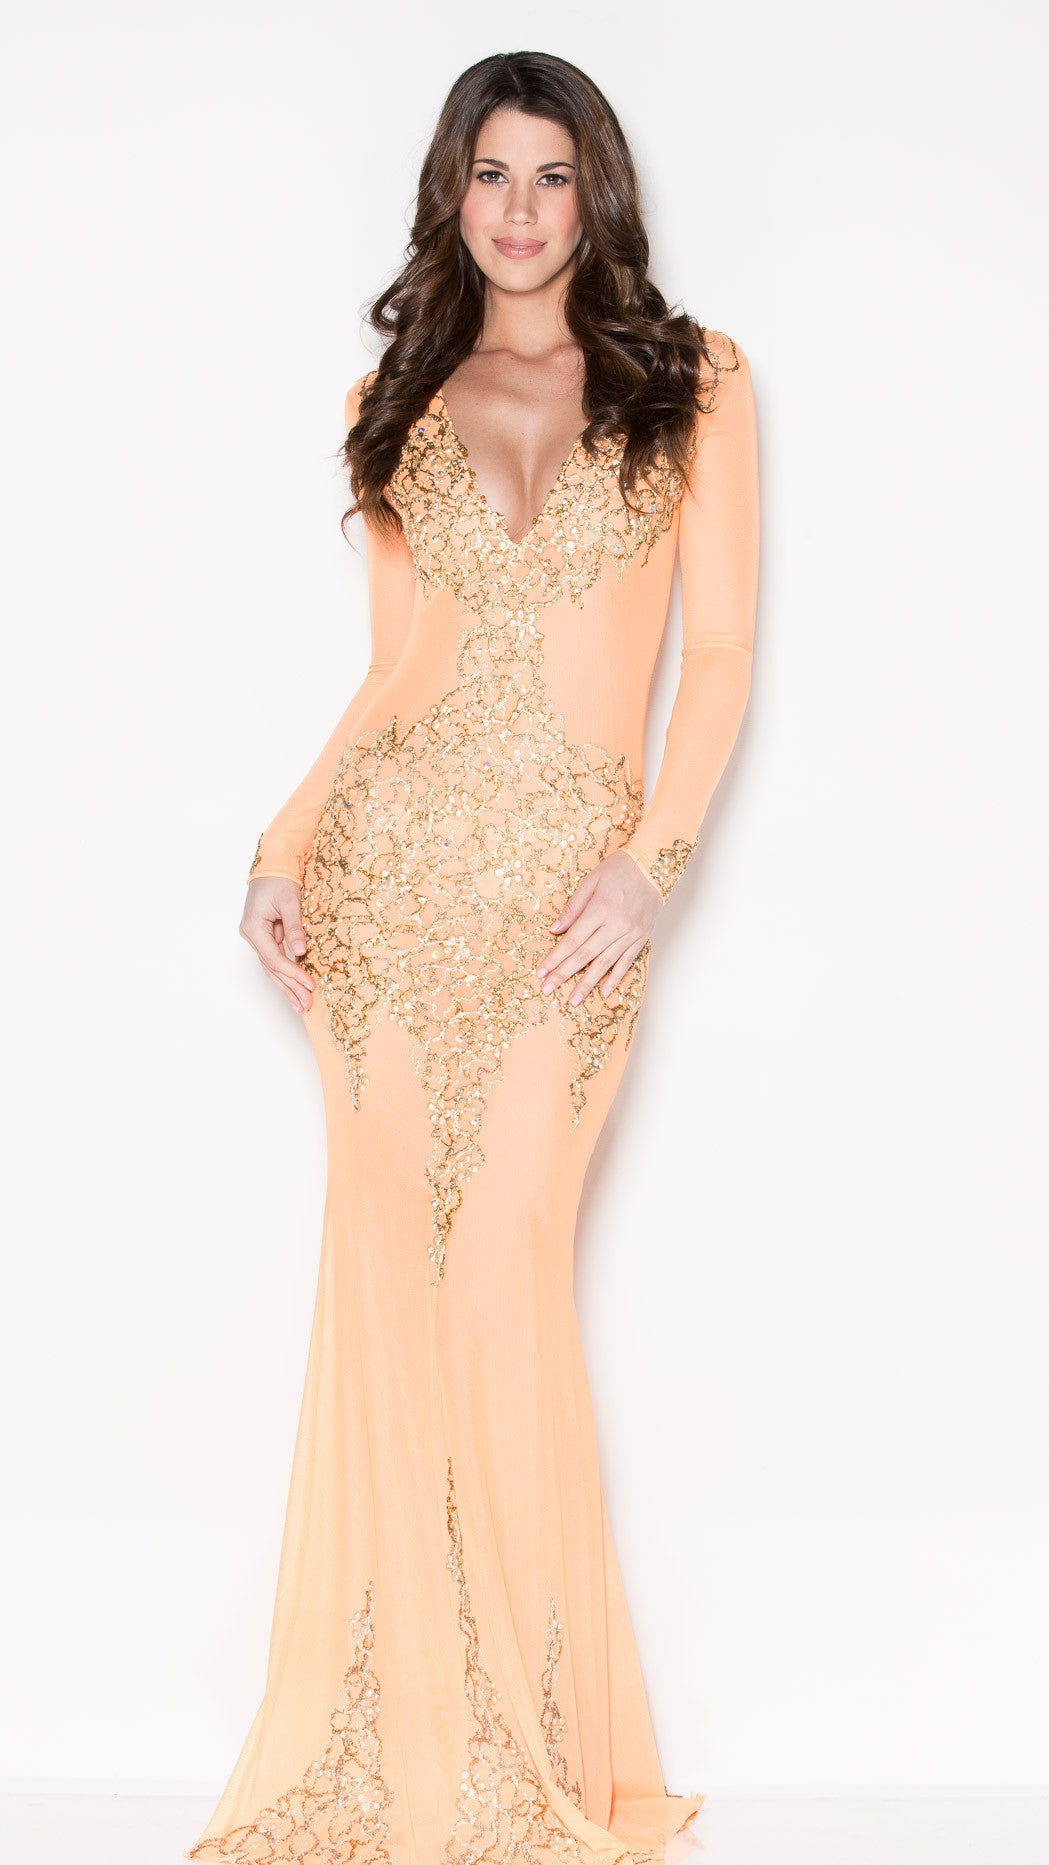 BEYONCE GOWN IN ORANGE WITH GOLD - HOLT